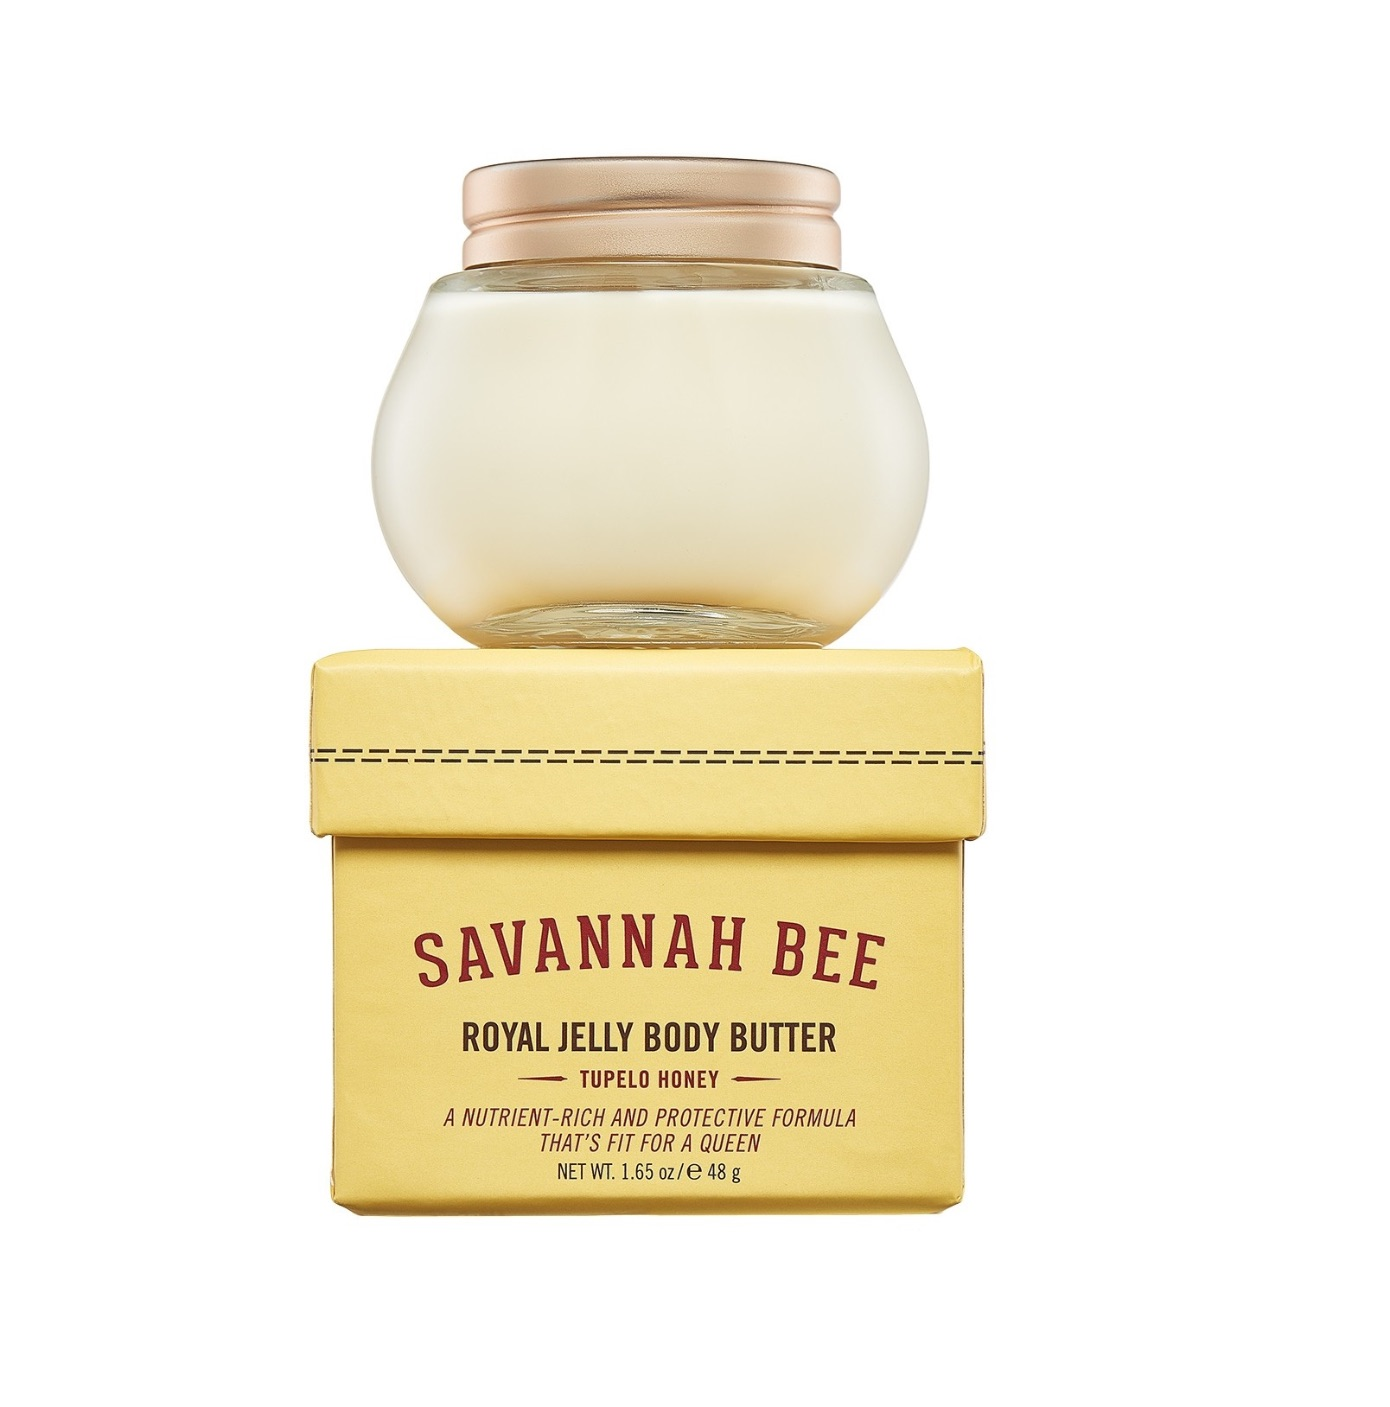 Savannah Bee Mini Tupelo Honey Royal Jelly Body Butter 48g